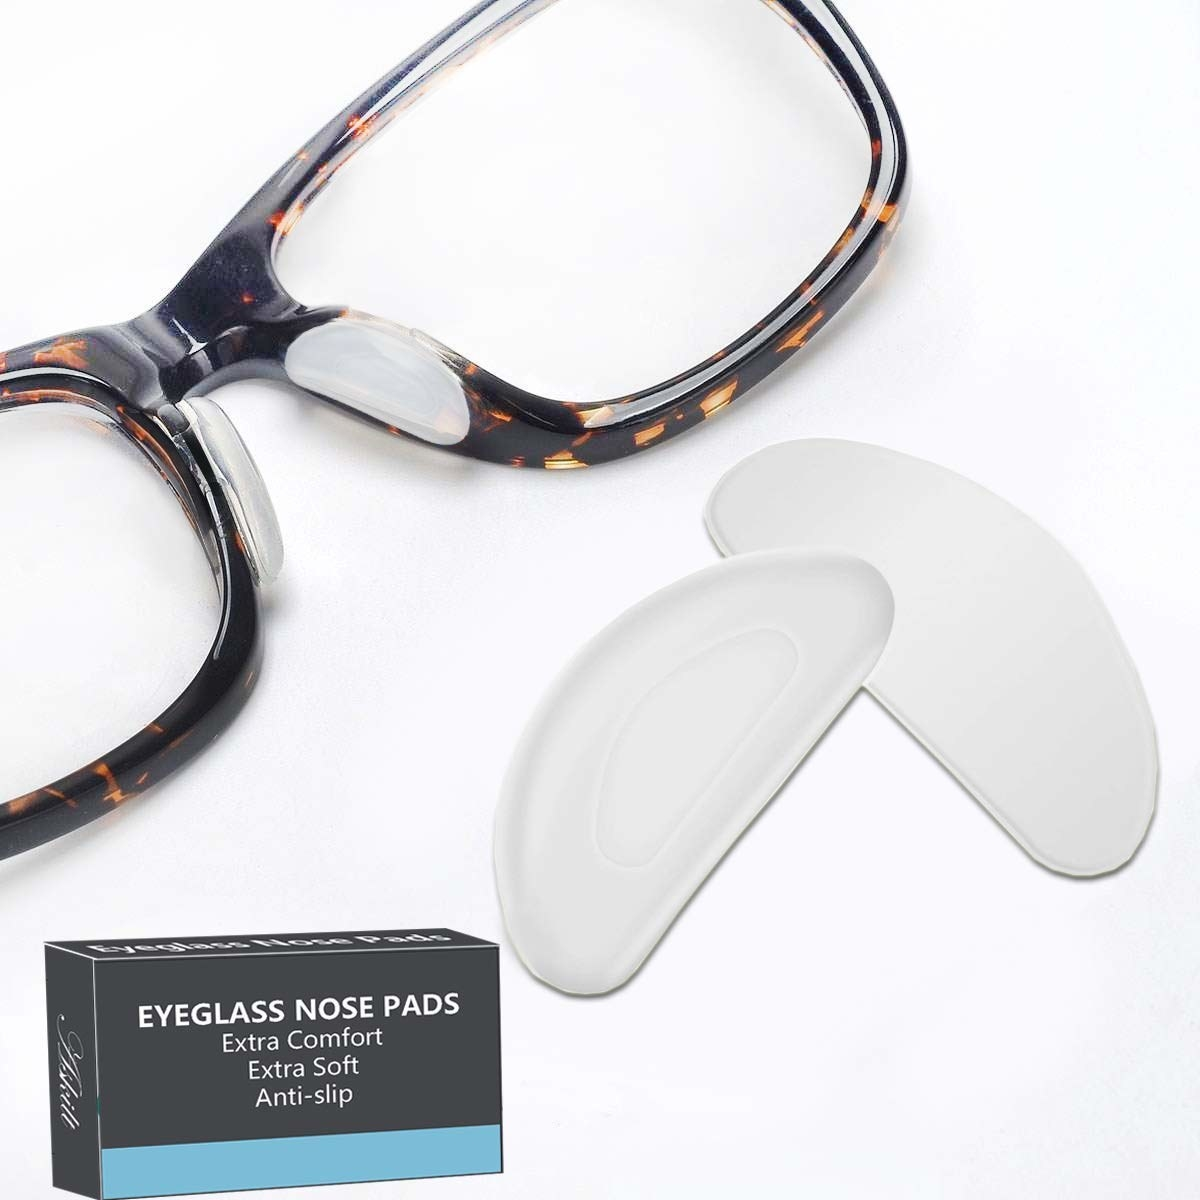 Eyeglass nose pads on a pair of glasses